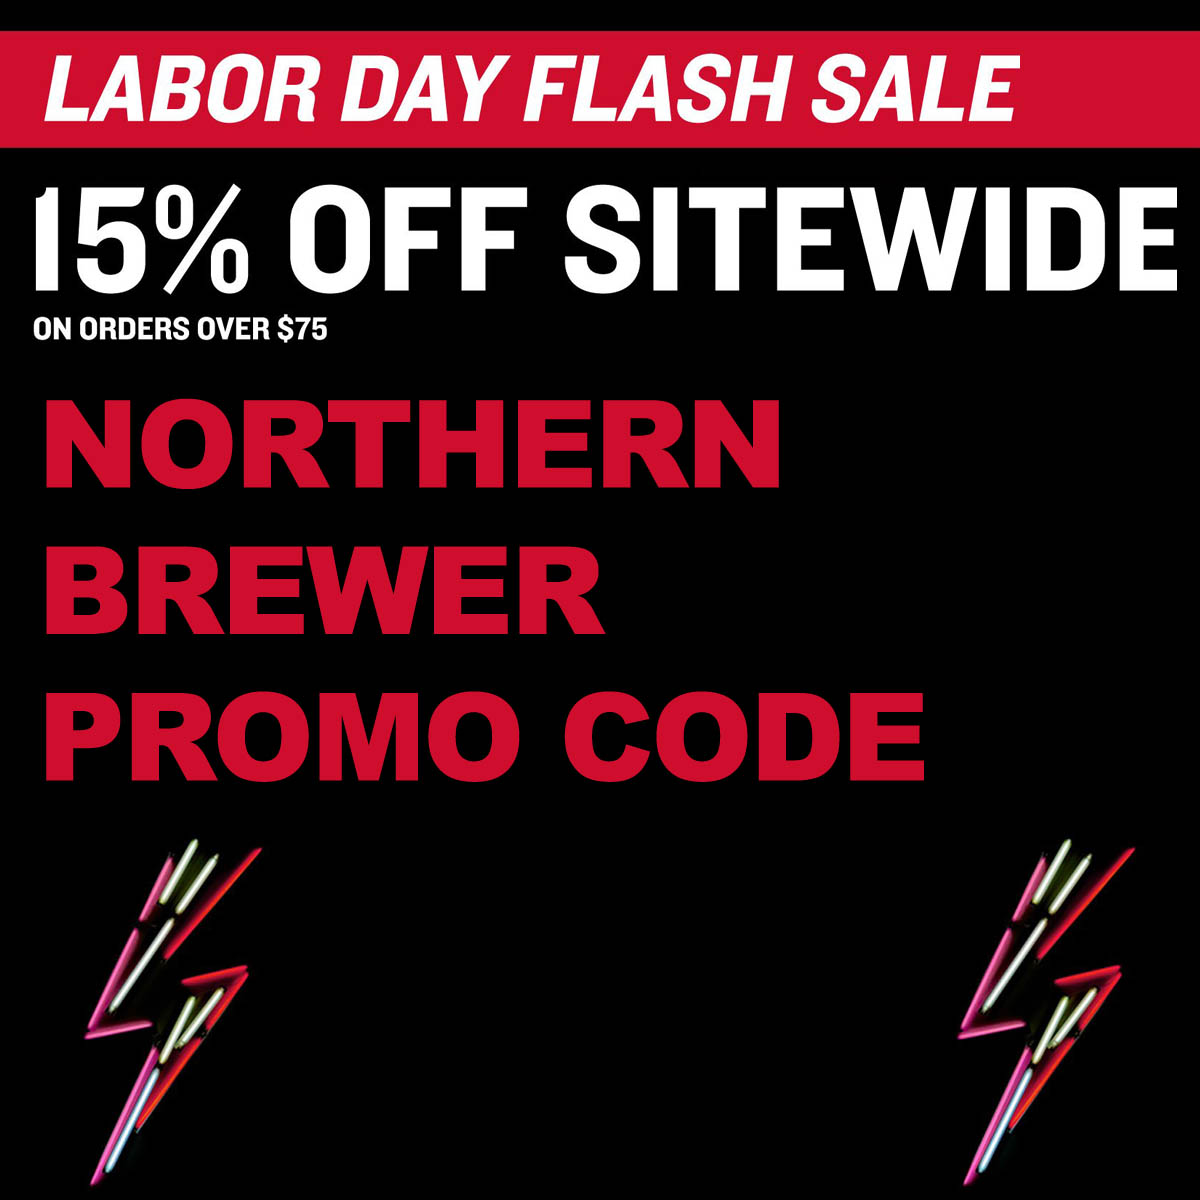 Home Wine Making Coupon Codes for Save 15% On Orders Over $75 With This Northern Brewer Promo Code Coupon Code